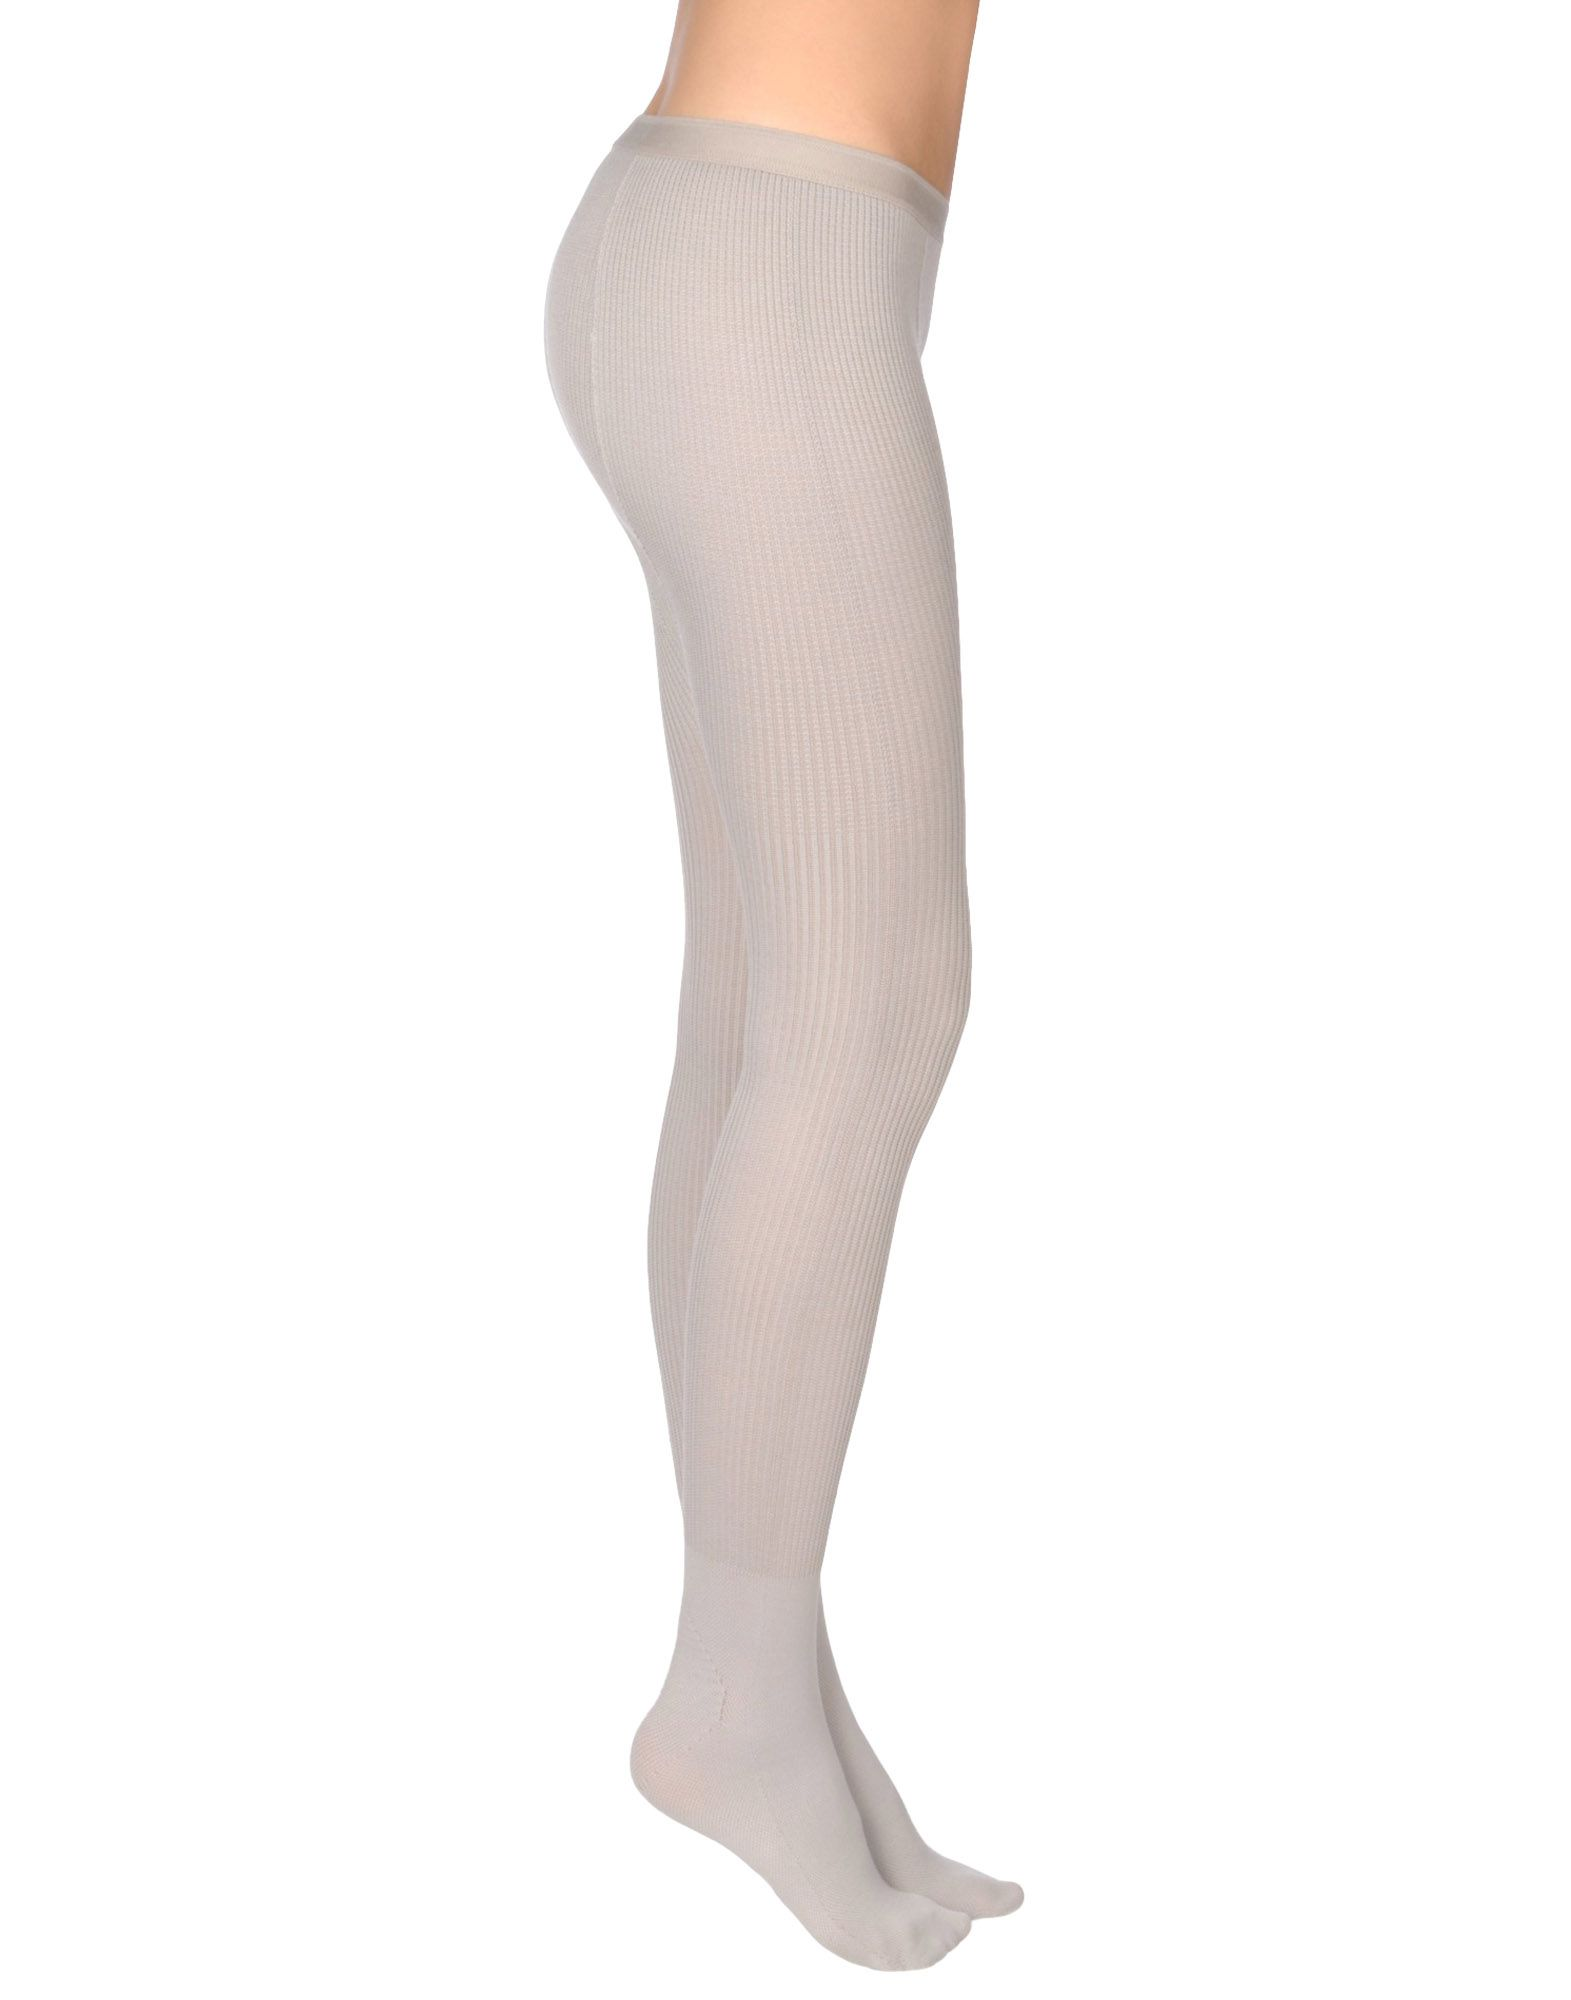 RICK OWENS Hosiery. no appliqués, lightweight sweater, basic solid color, knitted. 100% Virgin Wool